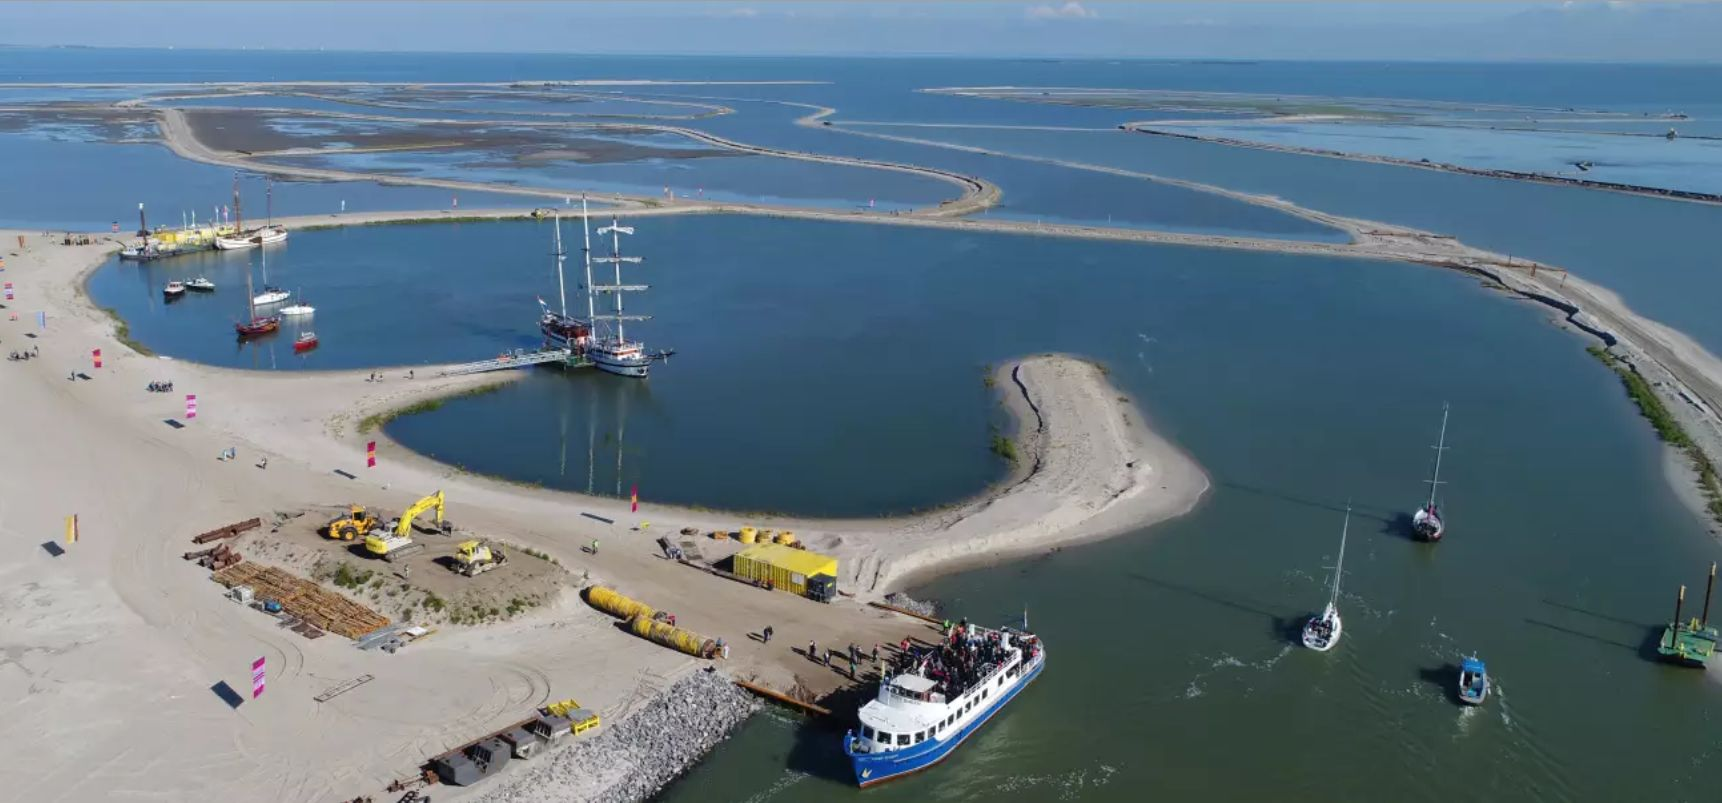 As one of Europe's largest, most ambitious and most innovative nature restoration initiatives, Marker Wadden is working to boost biodiversity and reconnect people with wild nature.